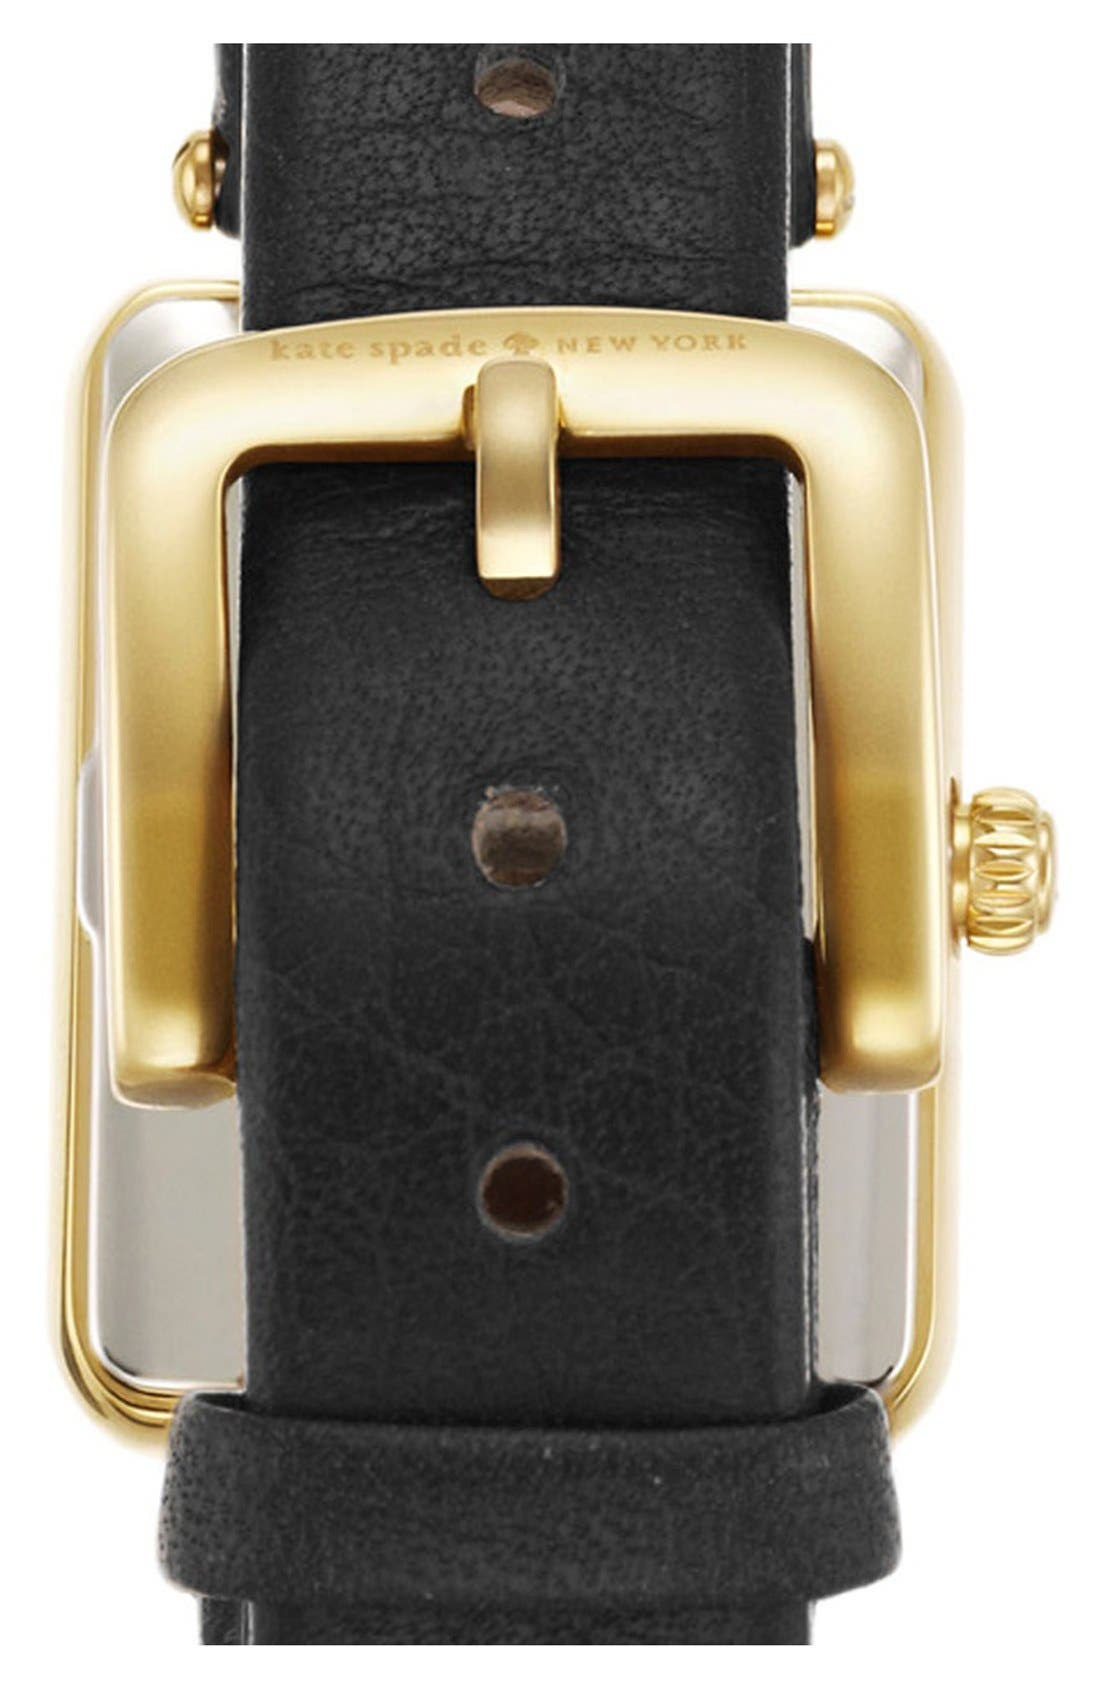 KATE SPADE NEW YORK, 'paley' rectangular leather strap watch, 21mm x 28mm, Alternate thumbnail 3, color, 001